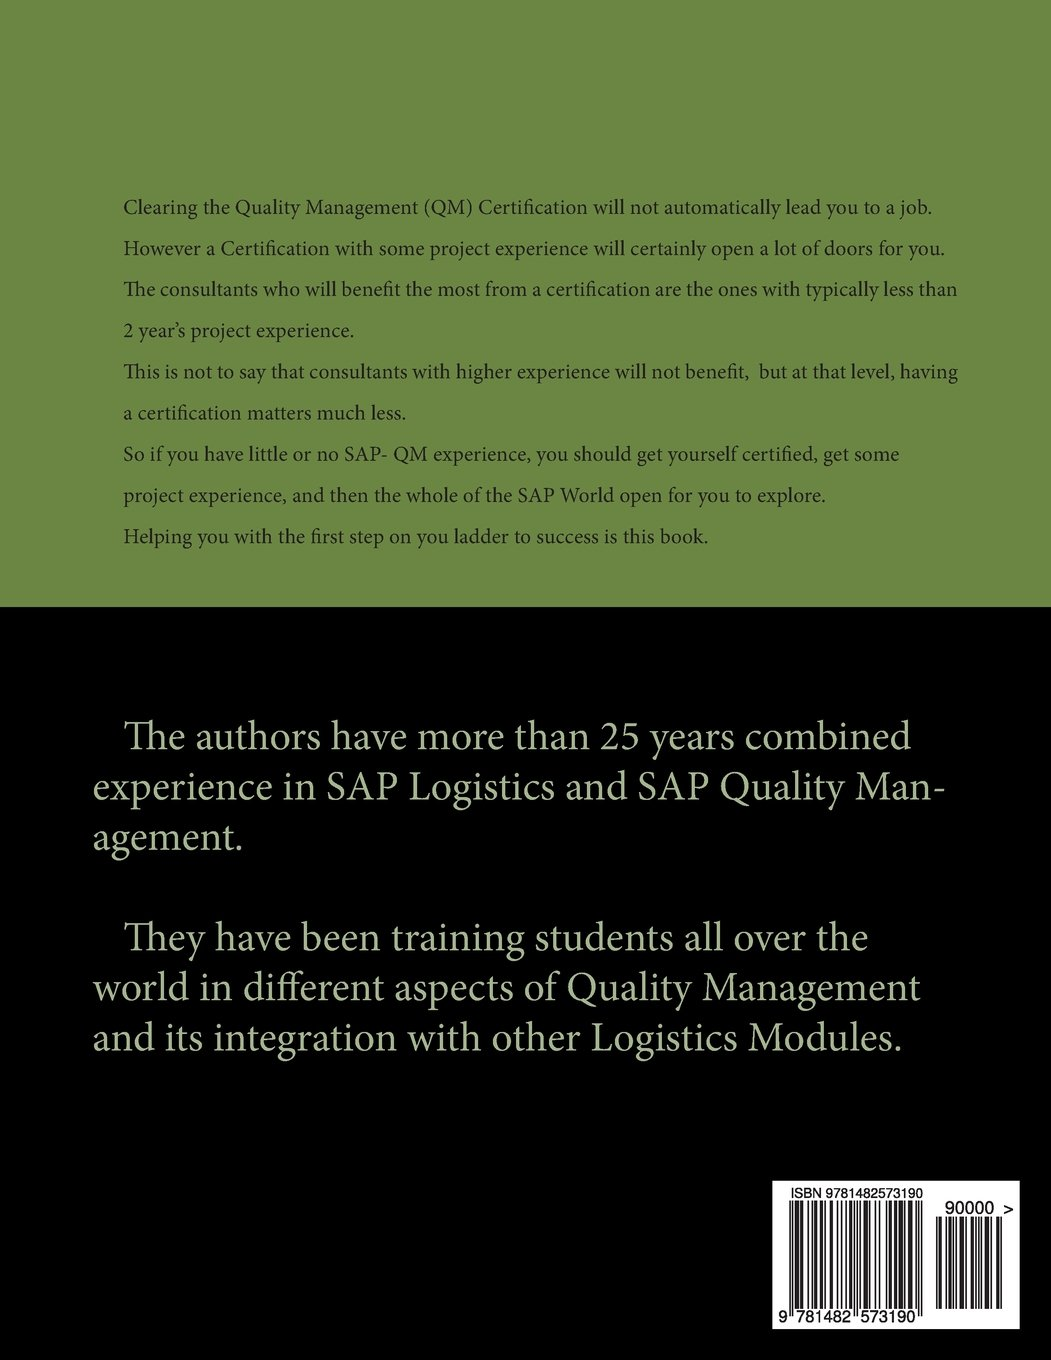 Sap certified application associate quality management with erp sap certified application associate quality management with erp 60 n thind s samuel 9781482573190 amazon books 1betcityfo Images